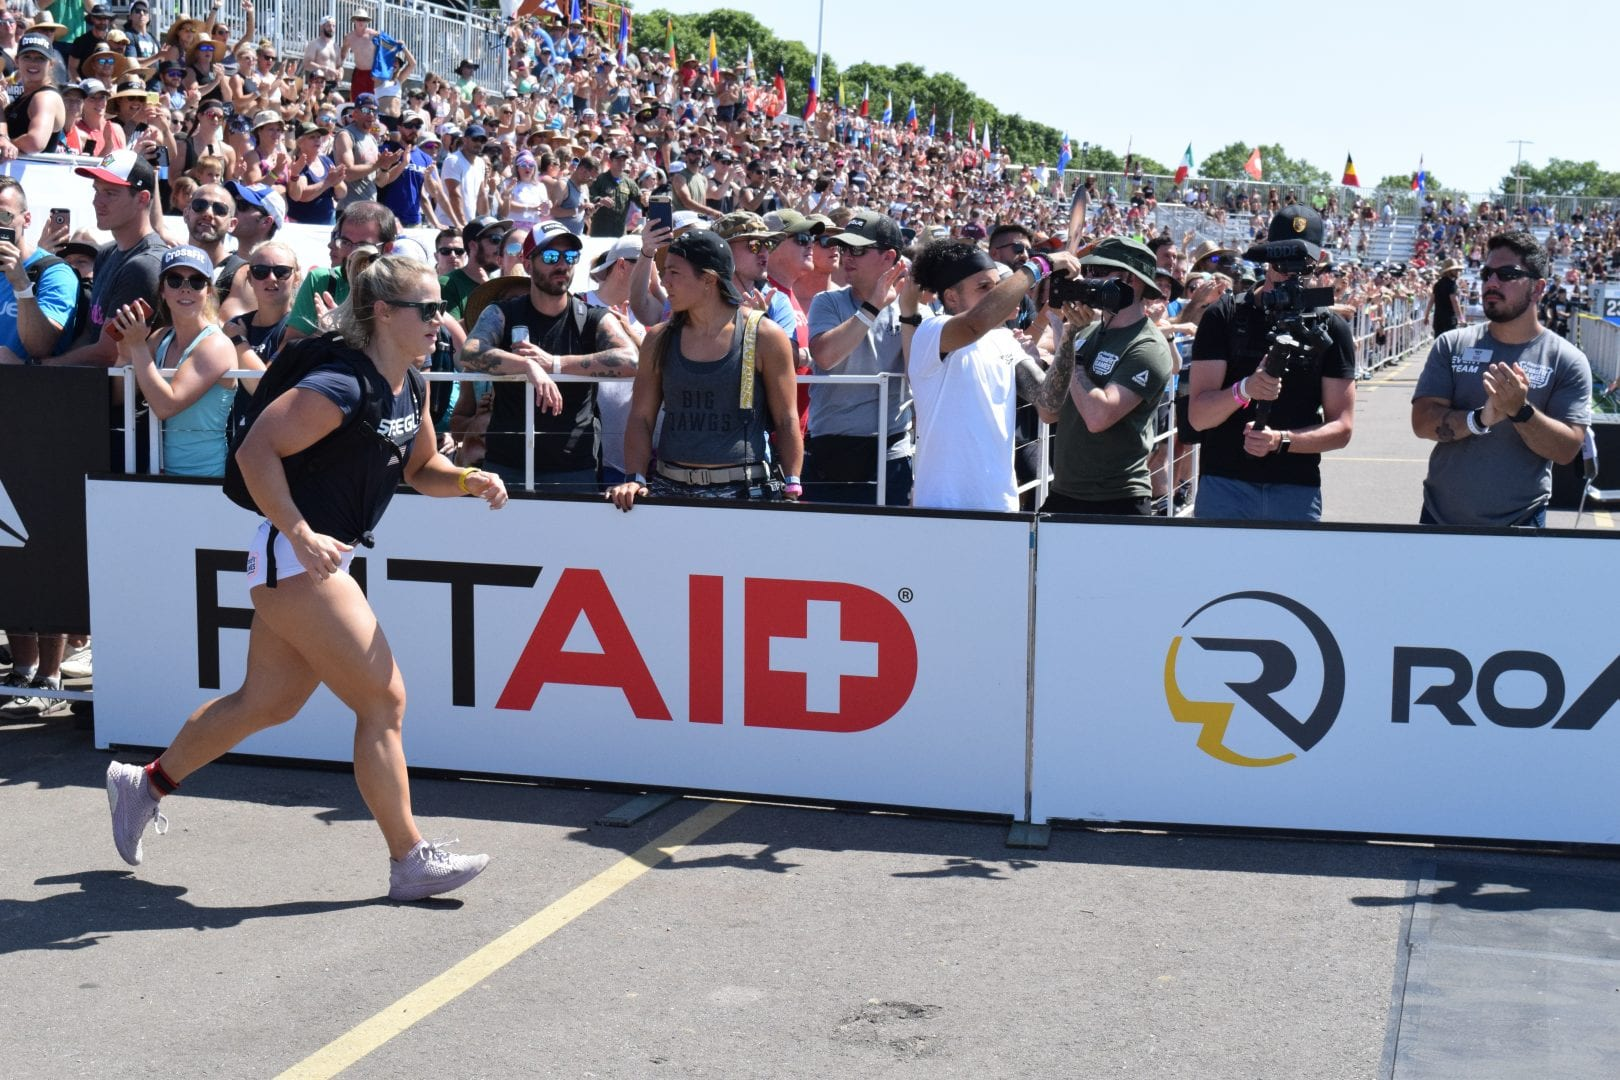 Dani Speegle completes the Ruck Run event at the 2019 CrossFit Games.